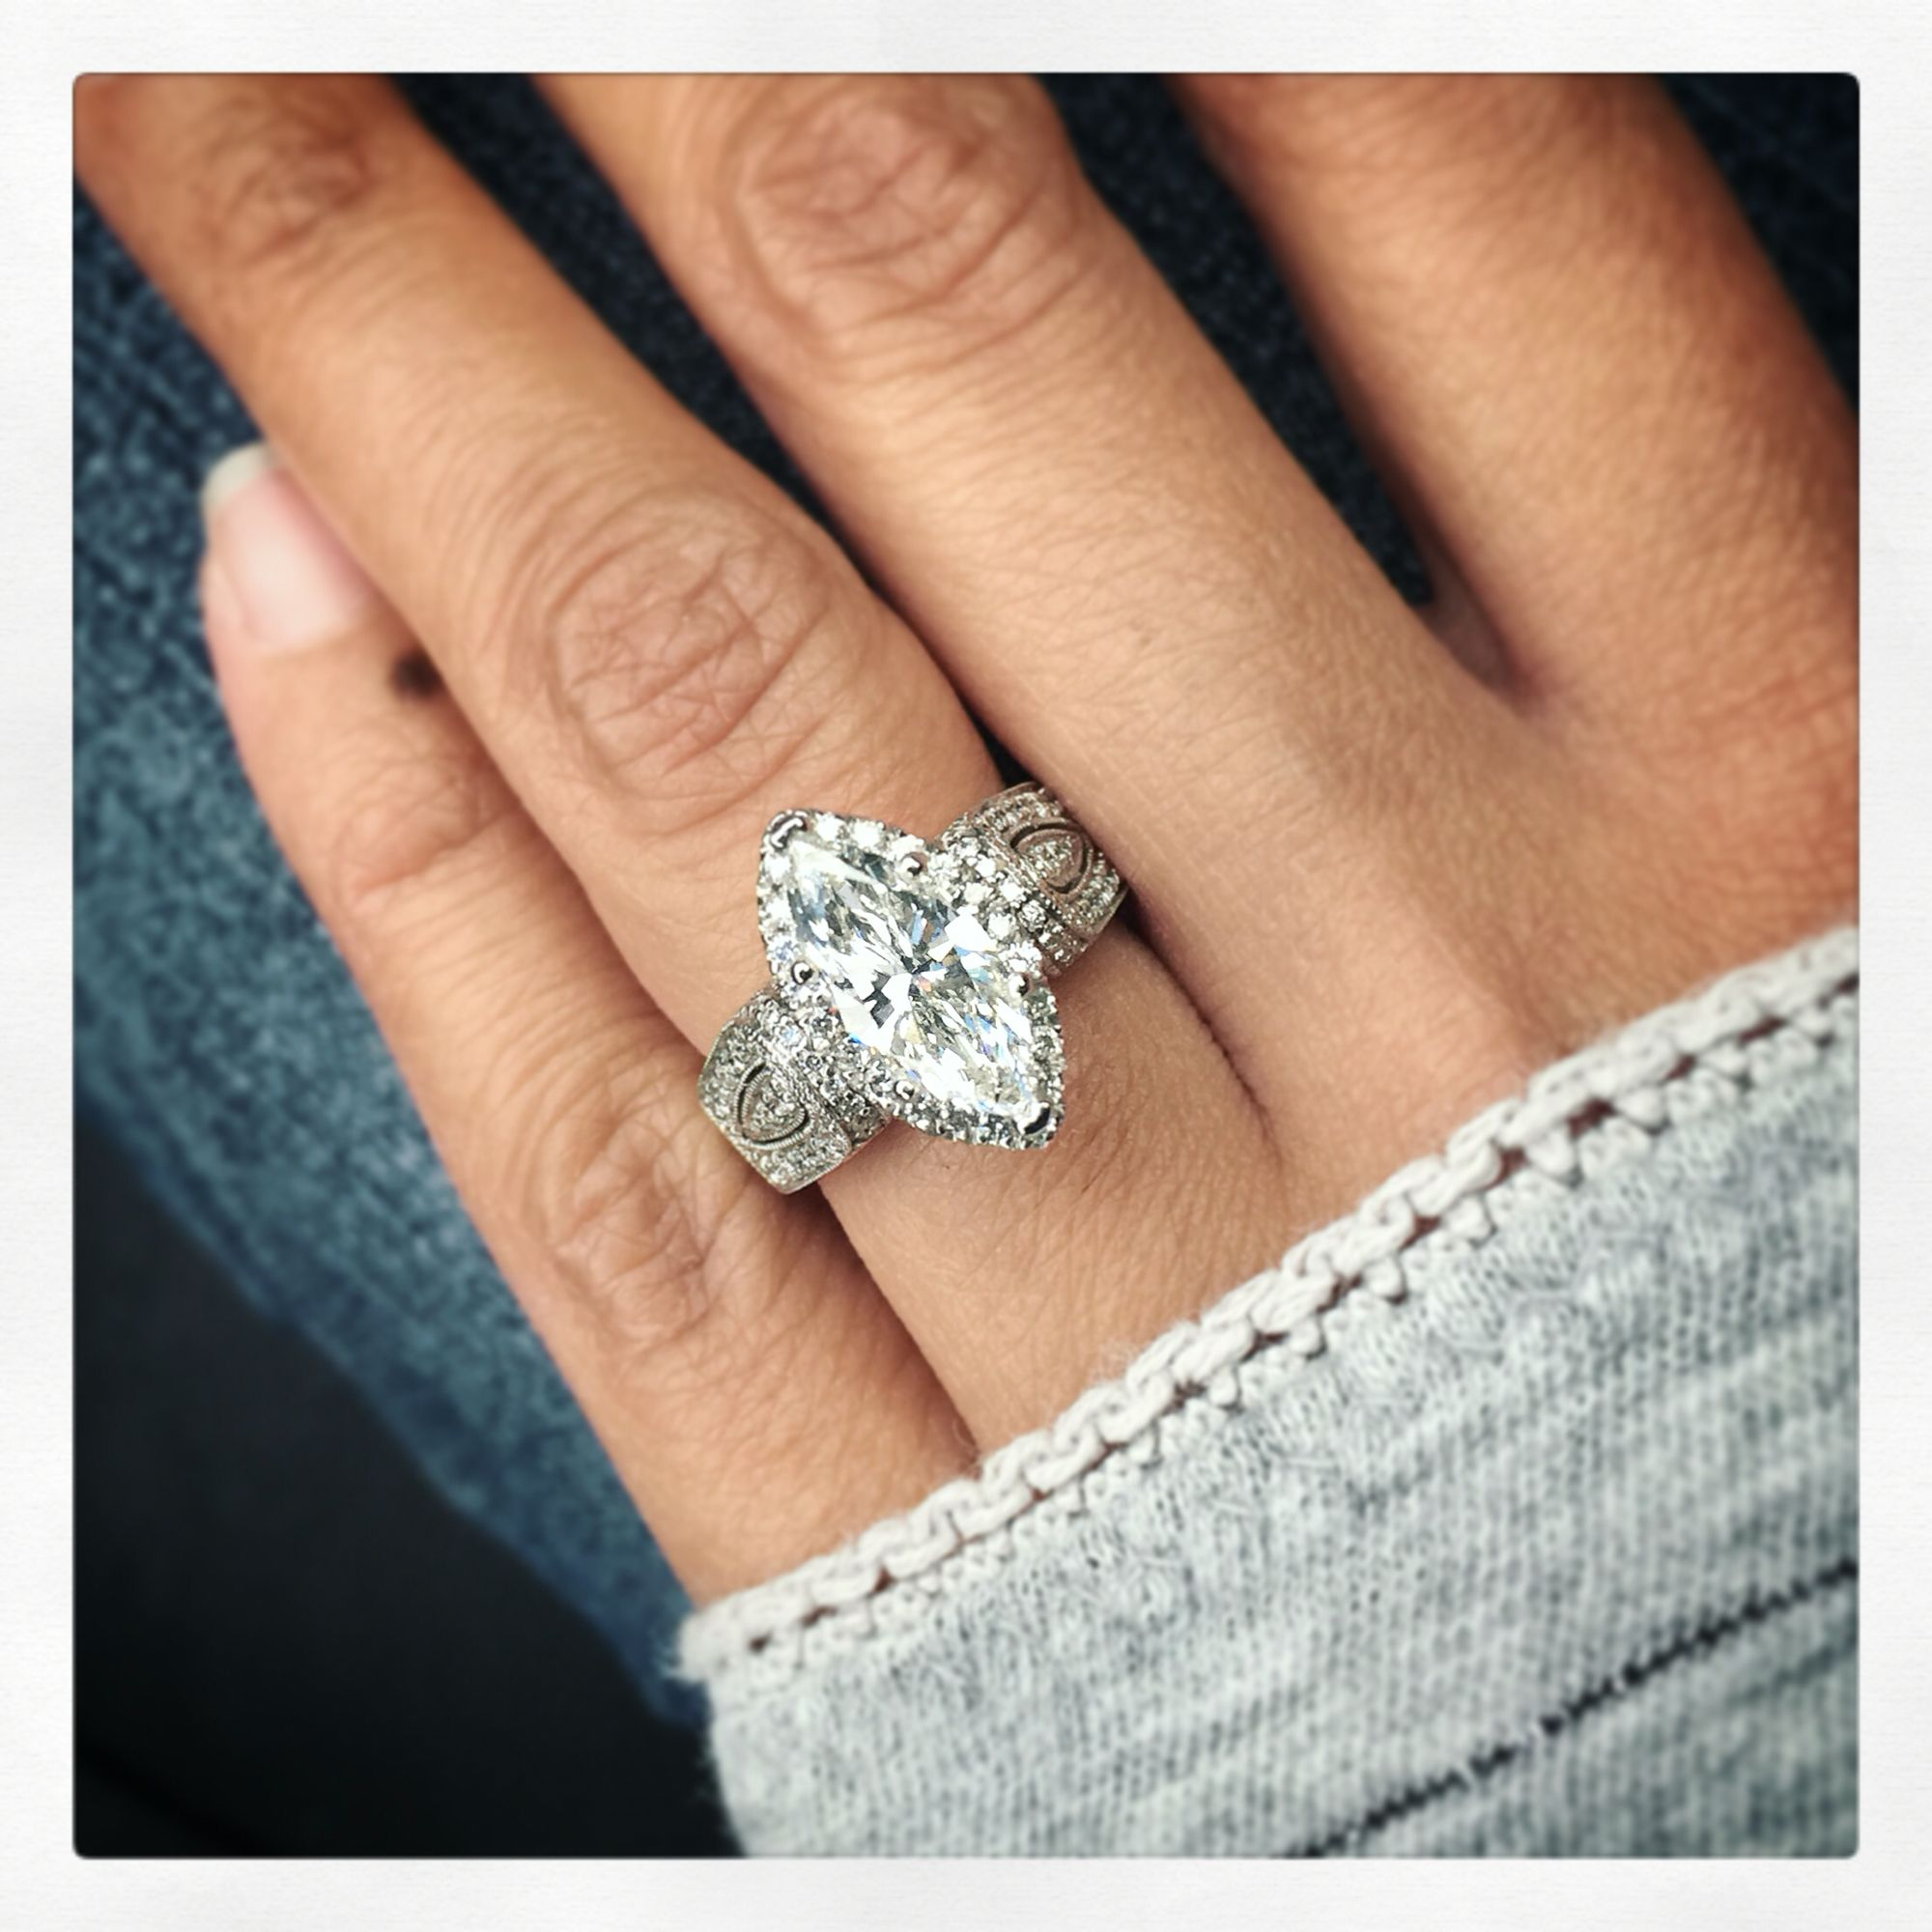 1 22 ct marquise diamond in 14k white gold halo pave diamonds setting custom engagement ring